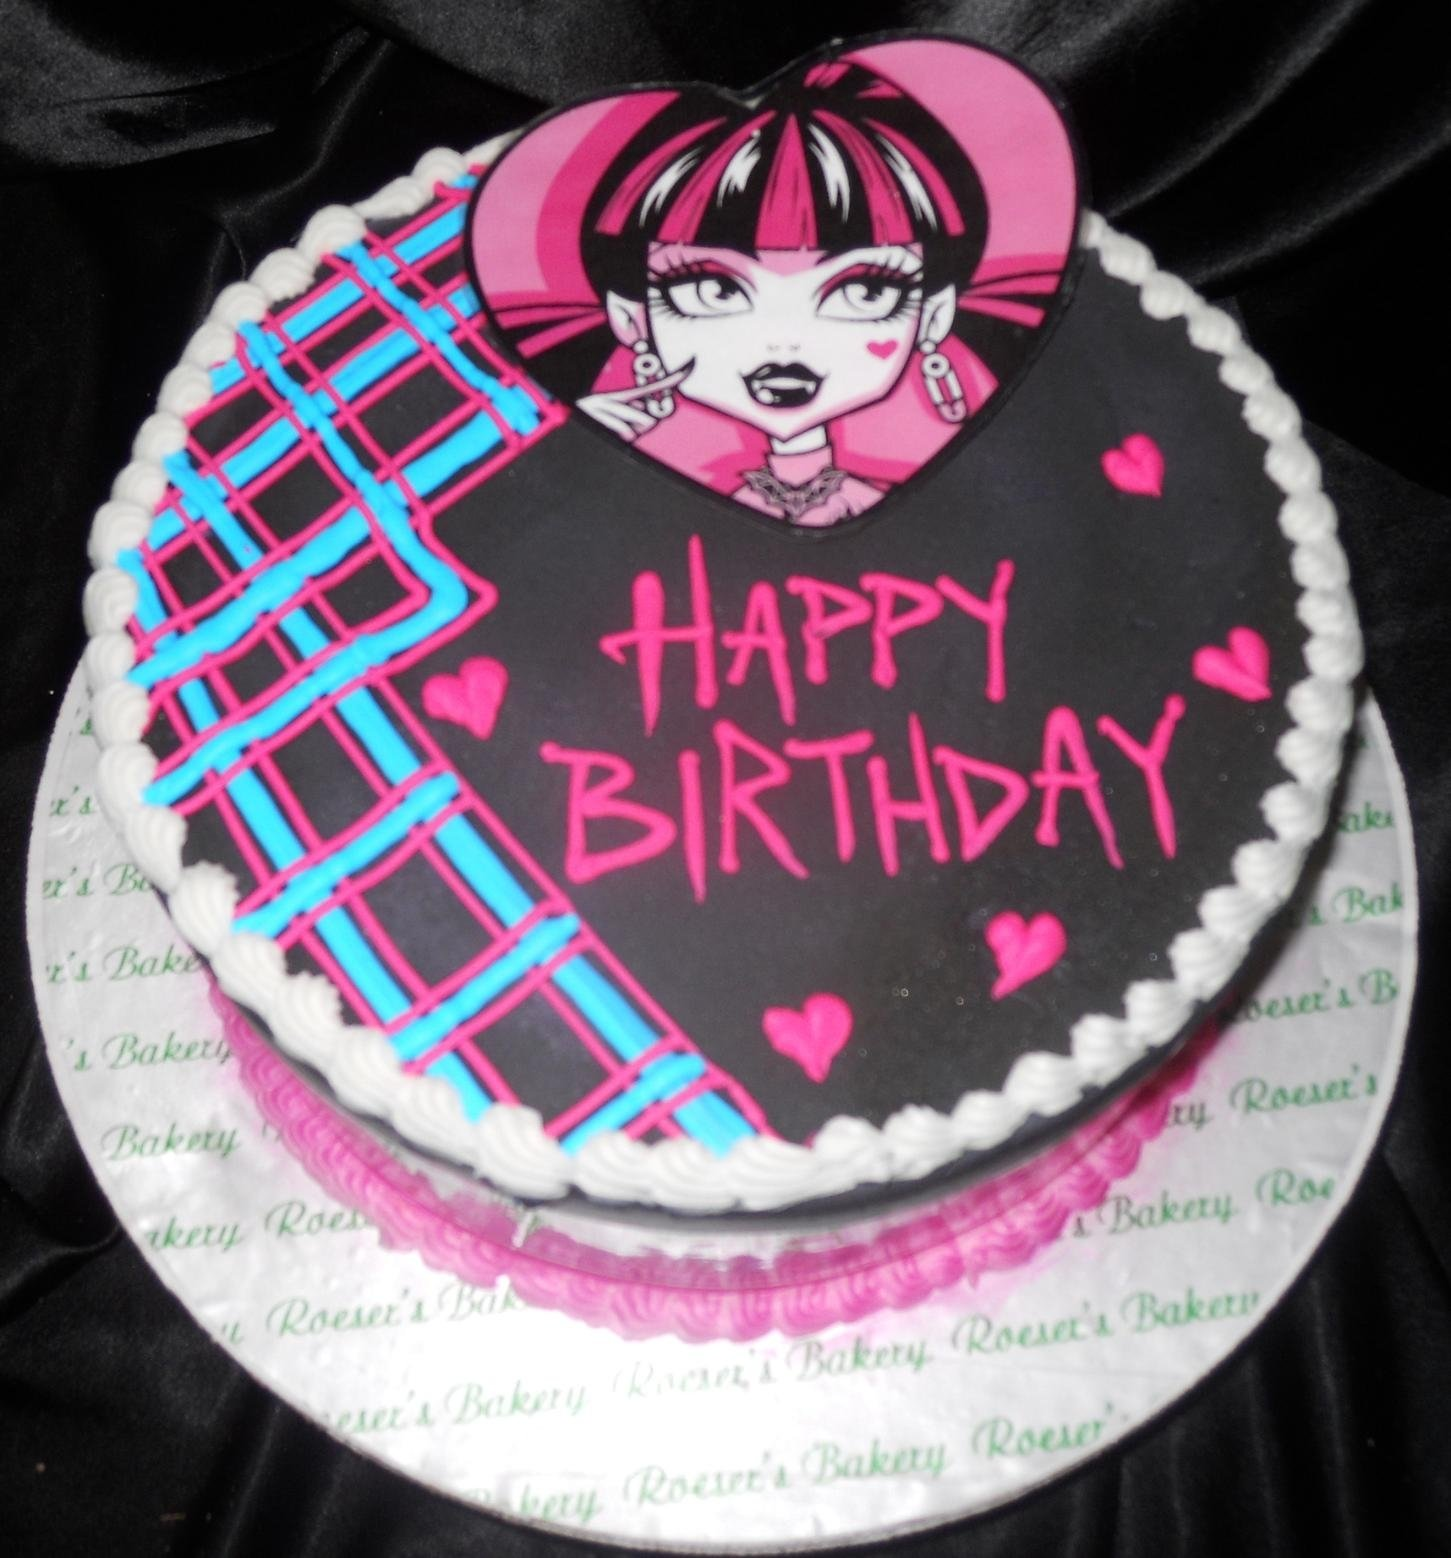 10 Lovable Monster High Birthday Cake Ideas monster high birthday cake kits criolla brithday wedding 2020